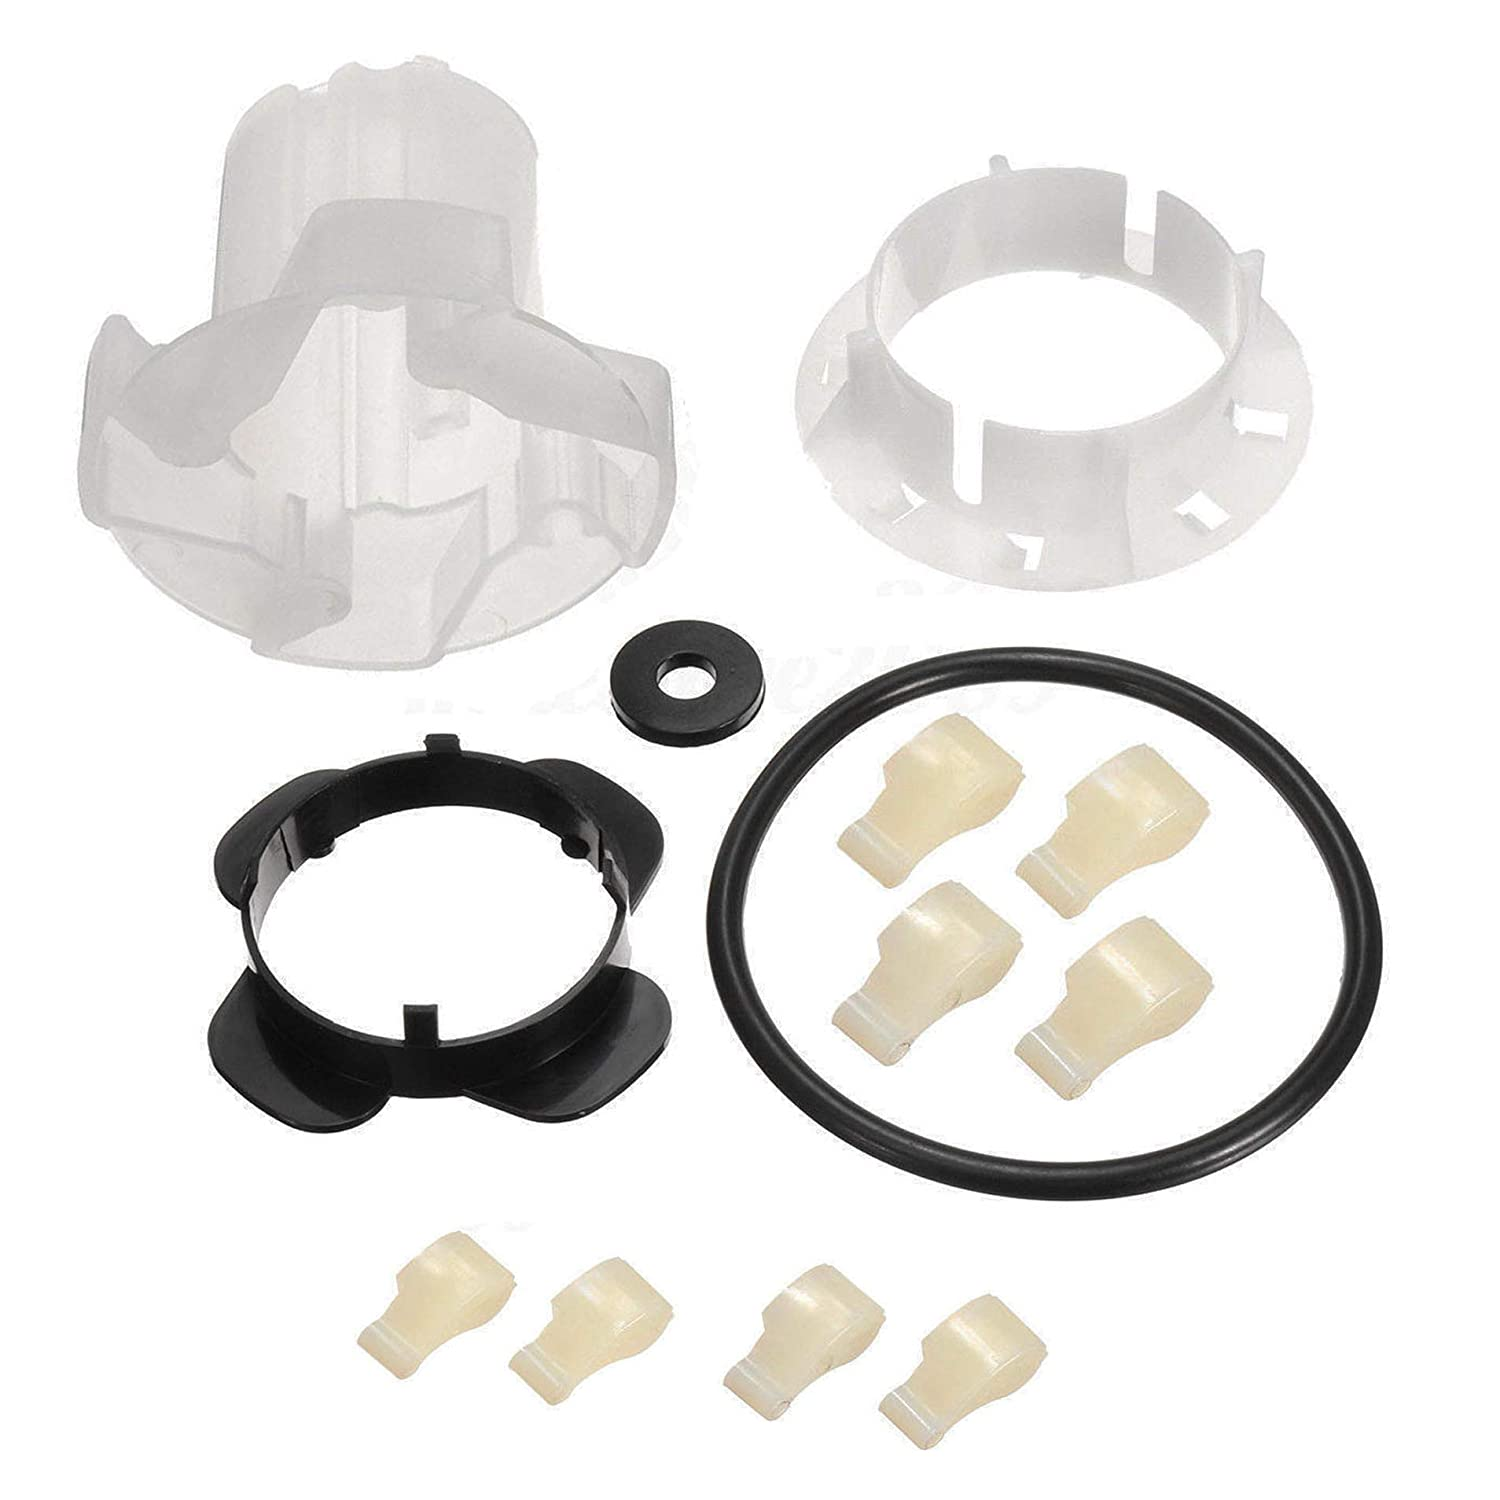 Agitator Repair Kit for Whirlpool Kenmore 285811 PS334650 AP3138838 285746 WTW5300SQ0 ITW4300SQ Washer Agitator Cam